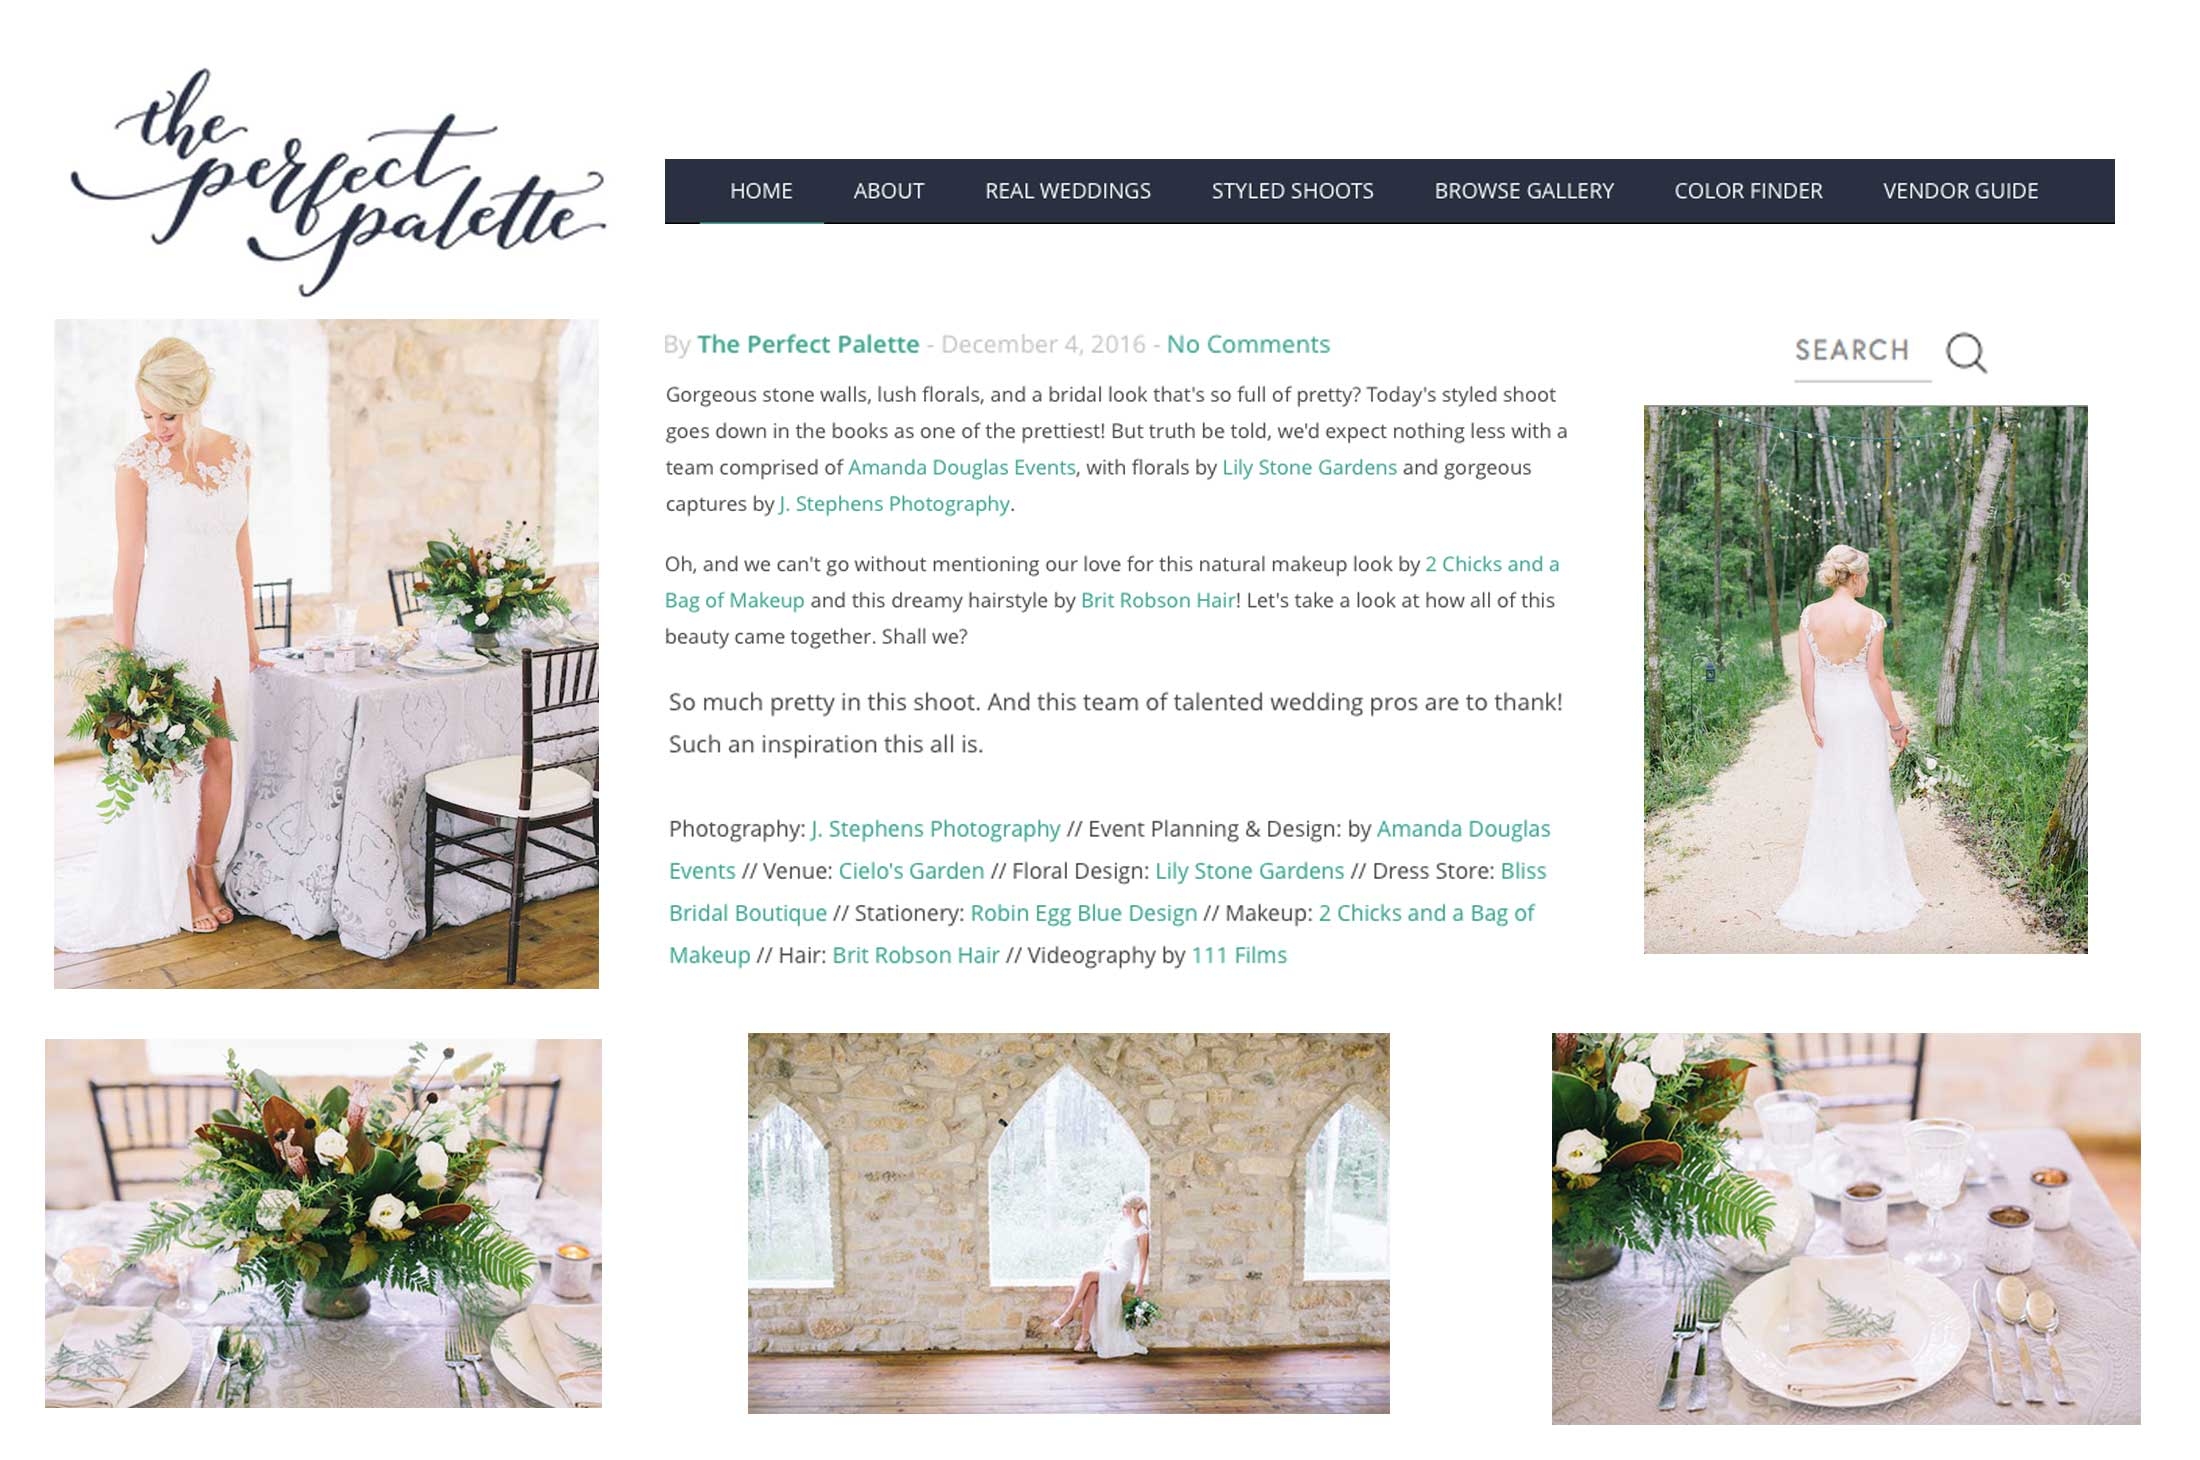 Winnipeg Wedding Planner and Inspiration Feature: The Perfect Palette